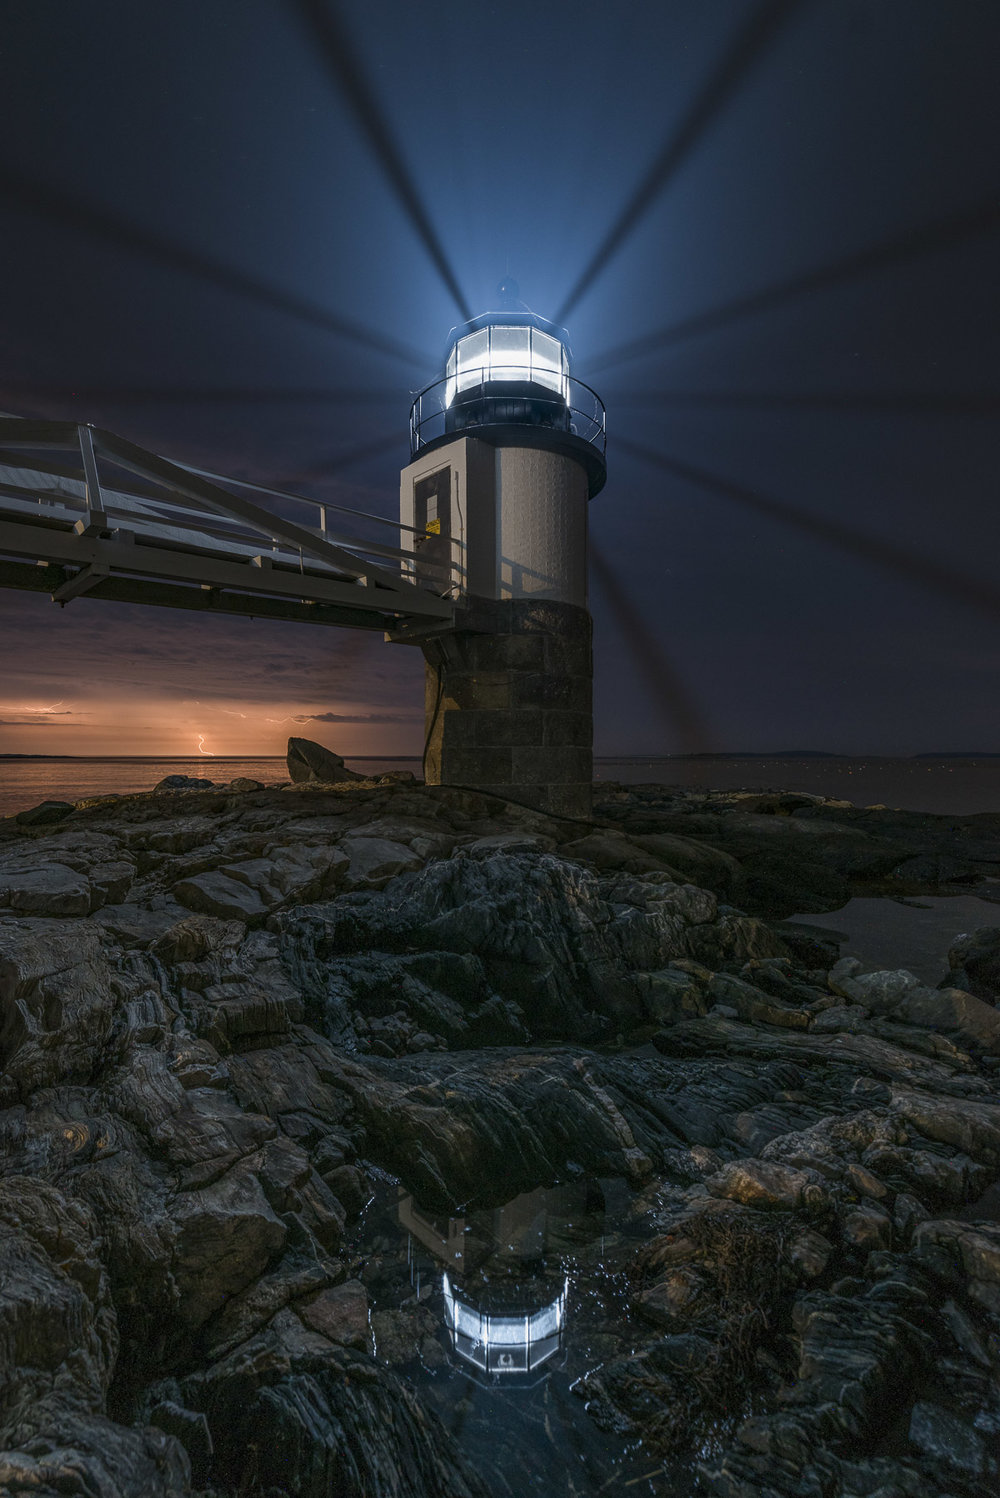 Marshall Point Lighthouse, Port Clyde, Maine. Nikon D750,  Tamron 15-30mm f/2.8  lens at 15mm. 110 seconds, f/4, ISO 400 for the foreground, plus a second exposure at 20 seconds, f/4, ISO 100 for the lighthouse. Light painted with a Luxli Viola at about 20 percent brightness, swept across the foreground to illuminate the dark rock.